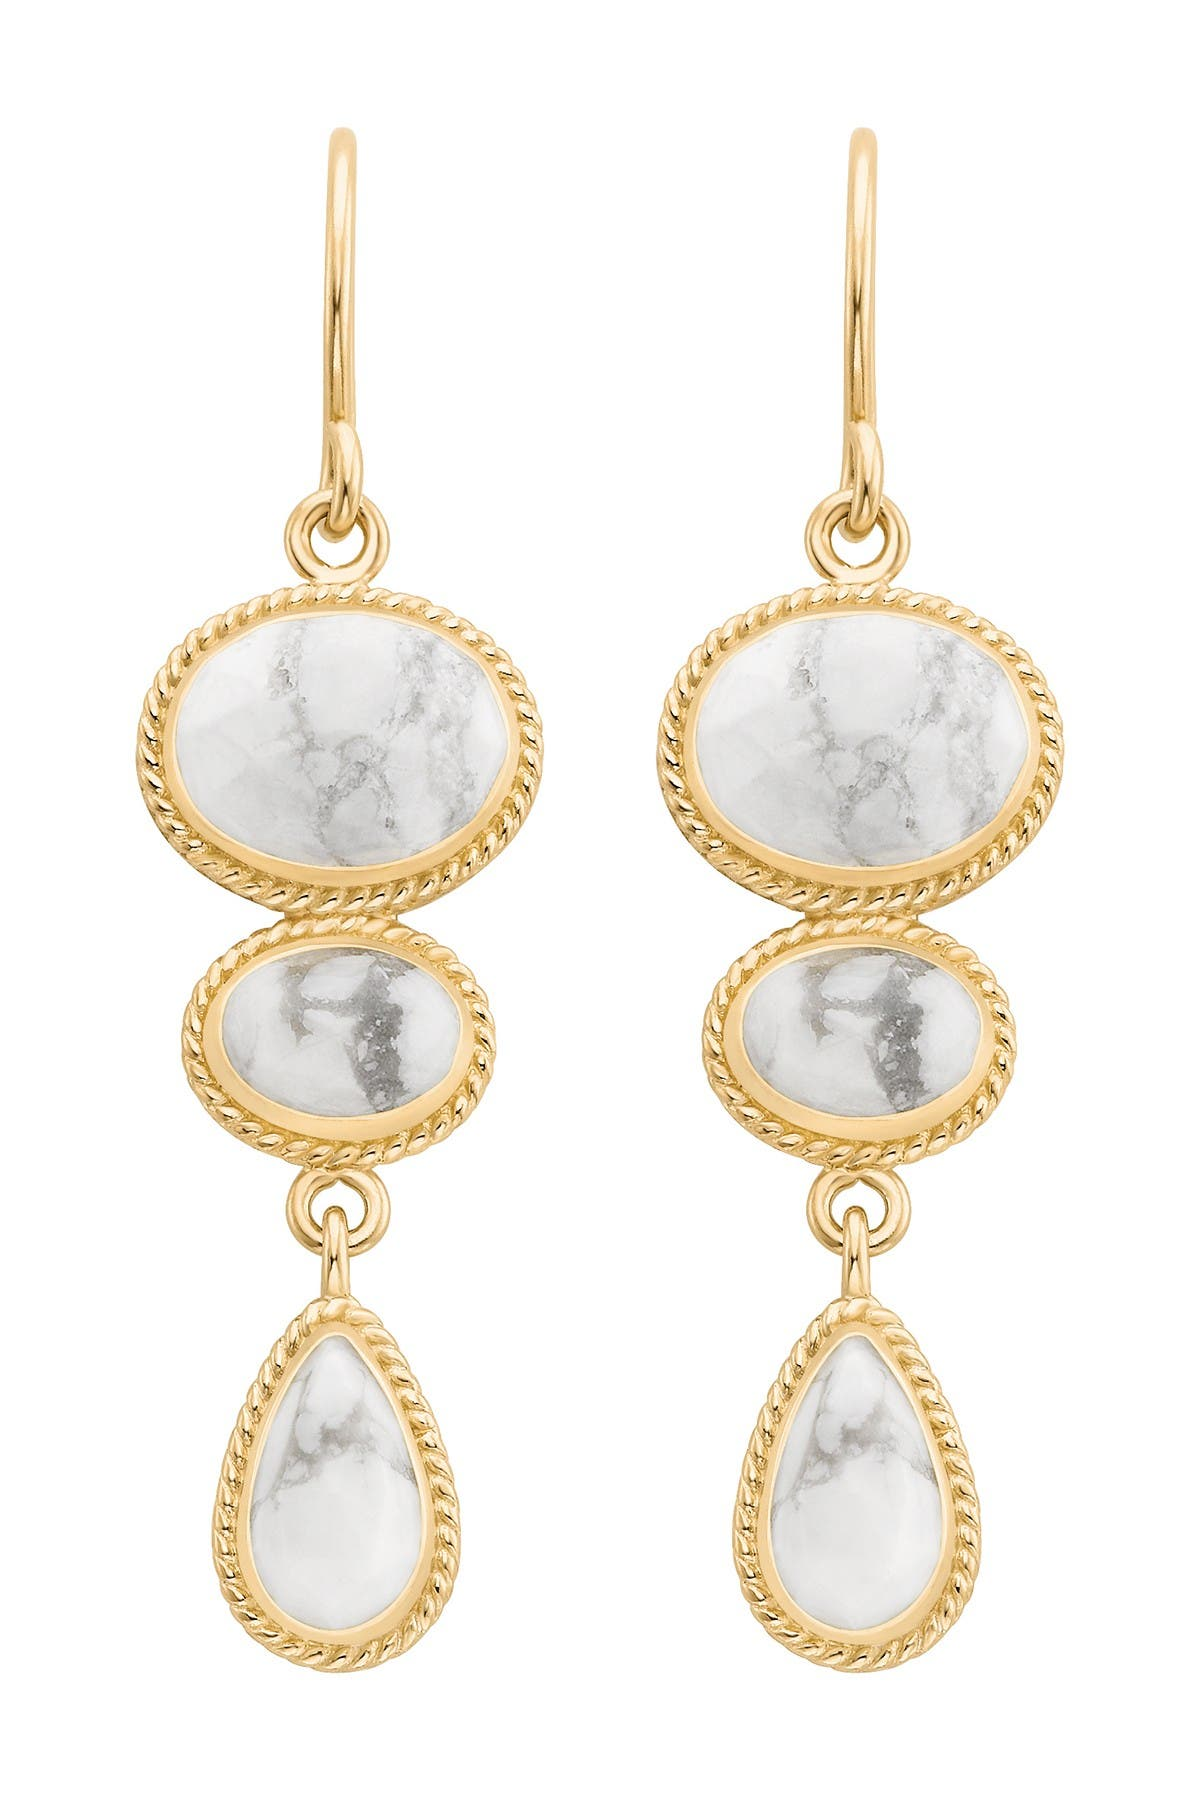 Image of Anna Beck 18K Gold Plated Sterling Silver Howlite Multi Stone Dangle Earrings